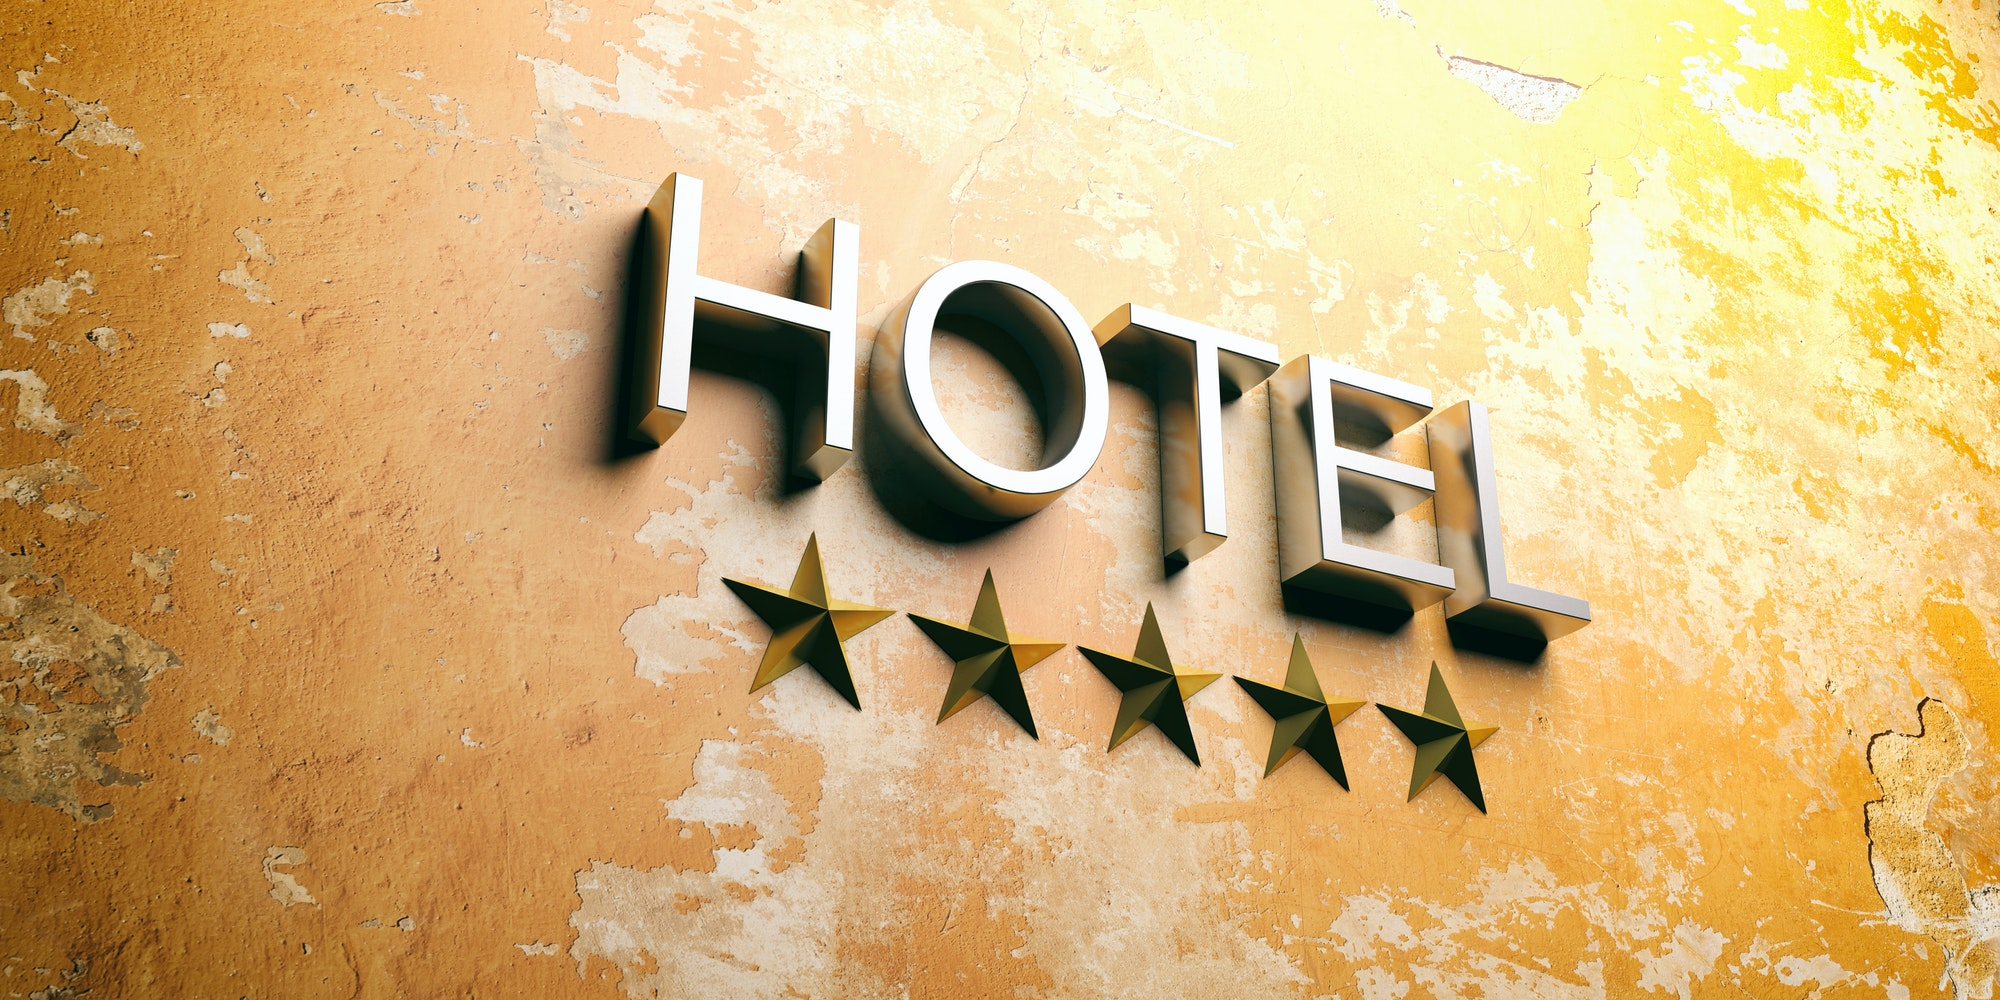 Hotel sign on stucco painted wall. 3d illustration